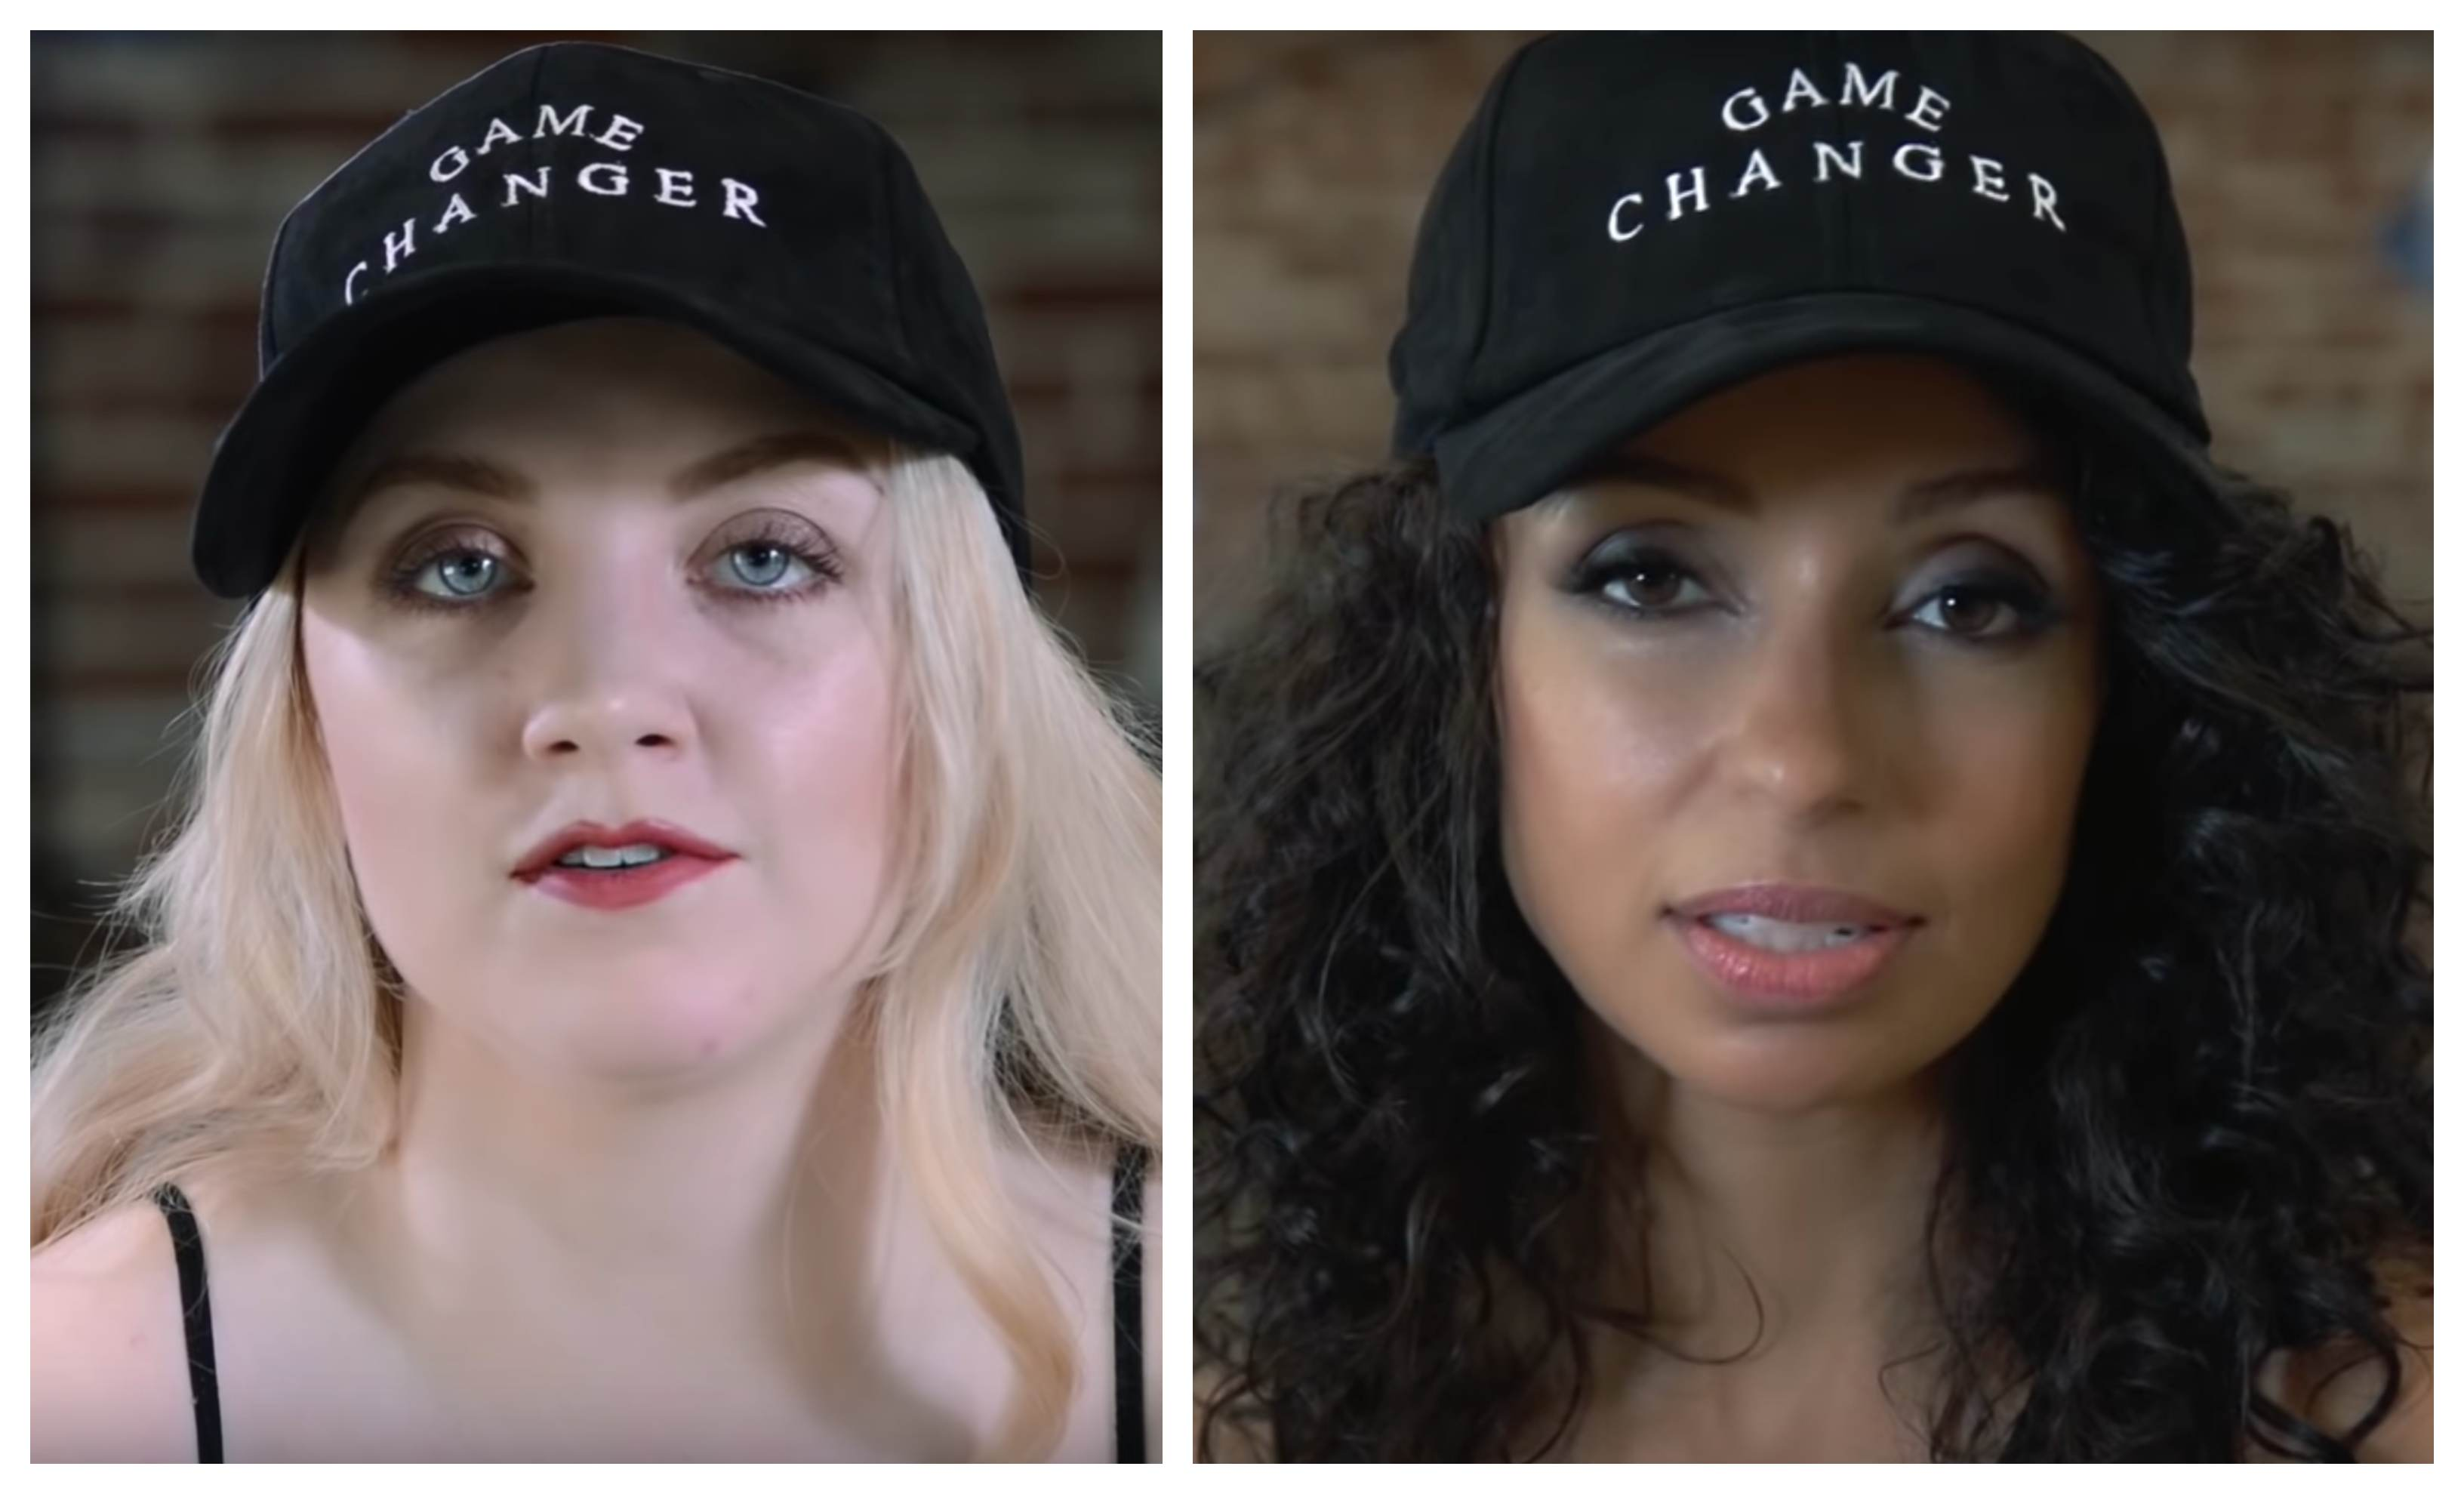 Vegan stars Evanna Lynch and Mya